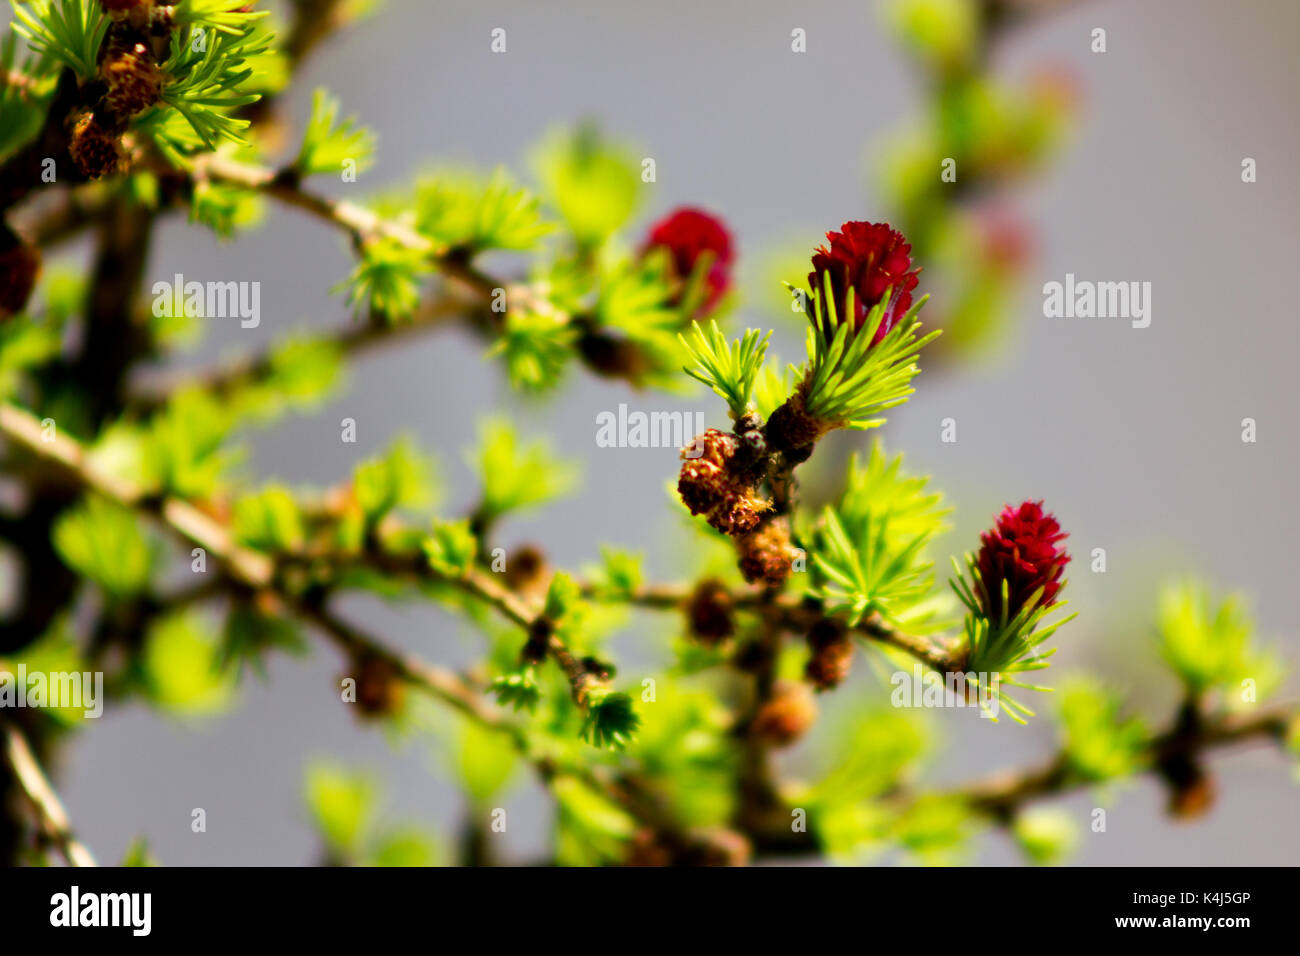 Young green needles and red cones of larch at blurred gray background in garden at sunny day - Stock Image